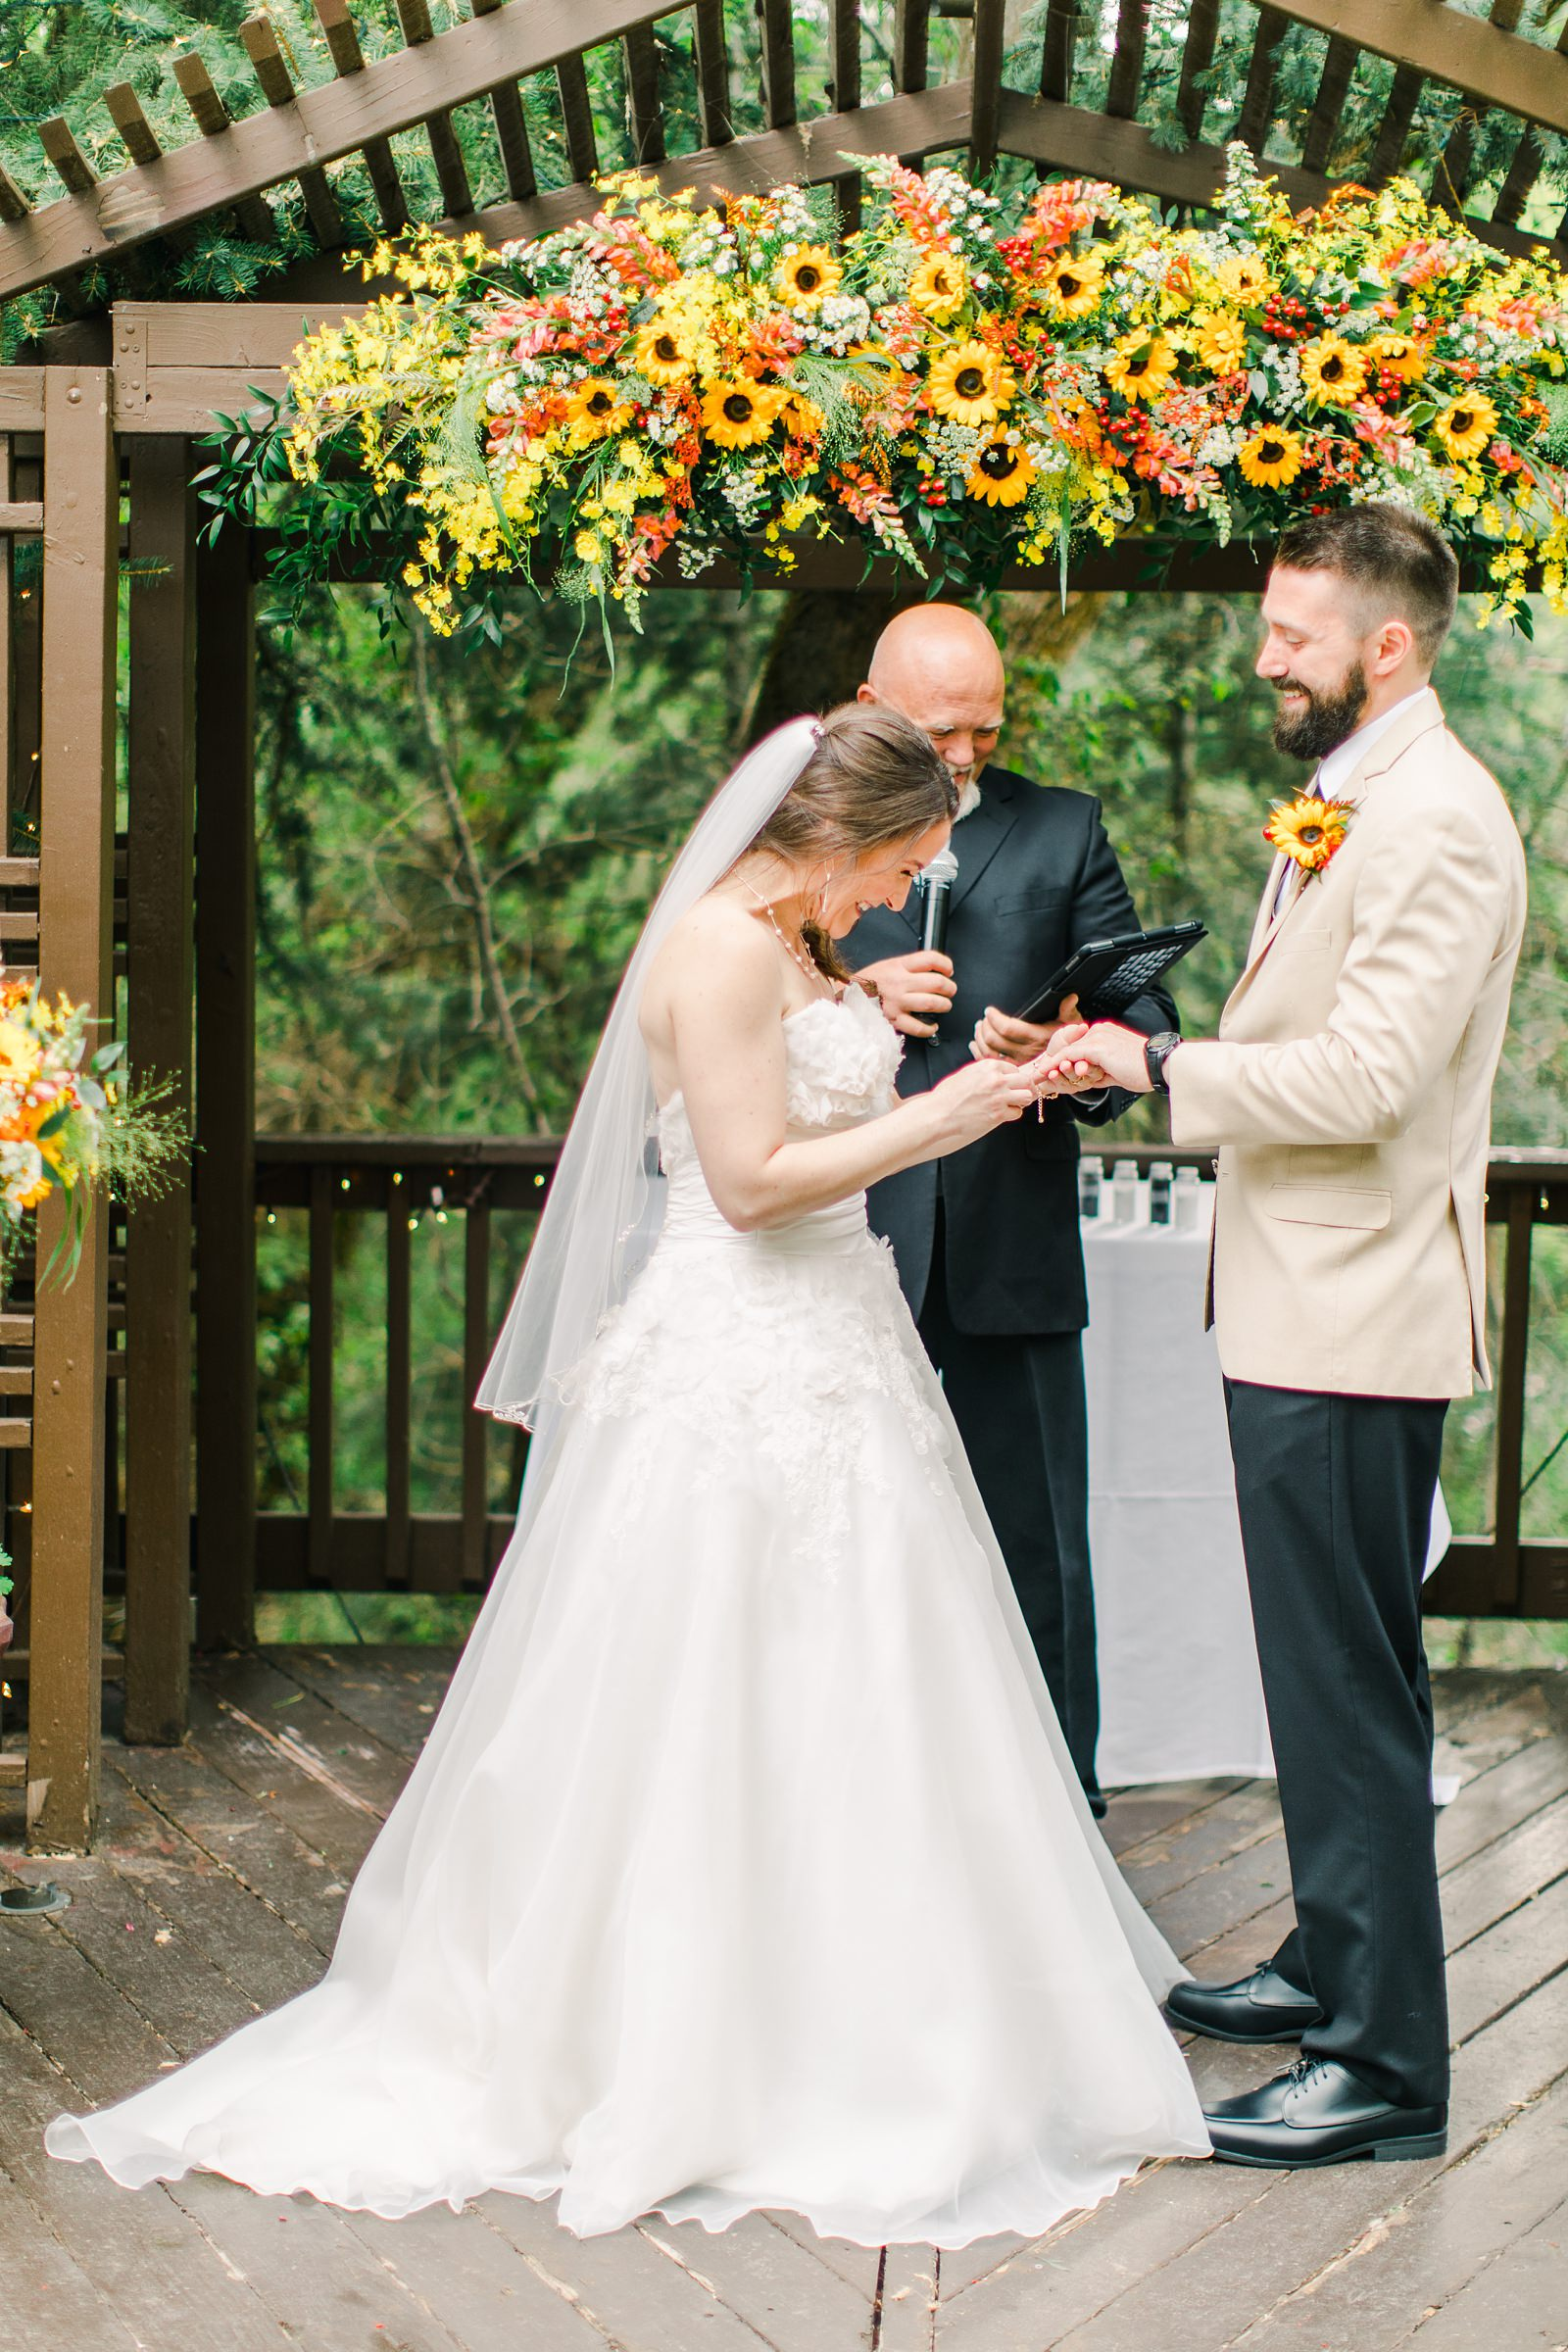 Millcreek Inn Summer Wedding, Utah wedding photography Millcreek Canyon, Salt Lake City, mountain ceremony, bride and groom under sunflower wildflower arch